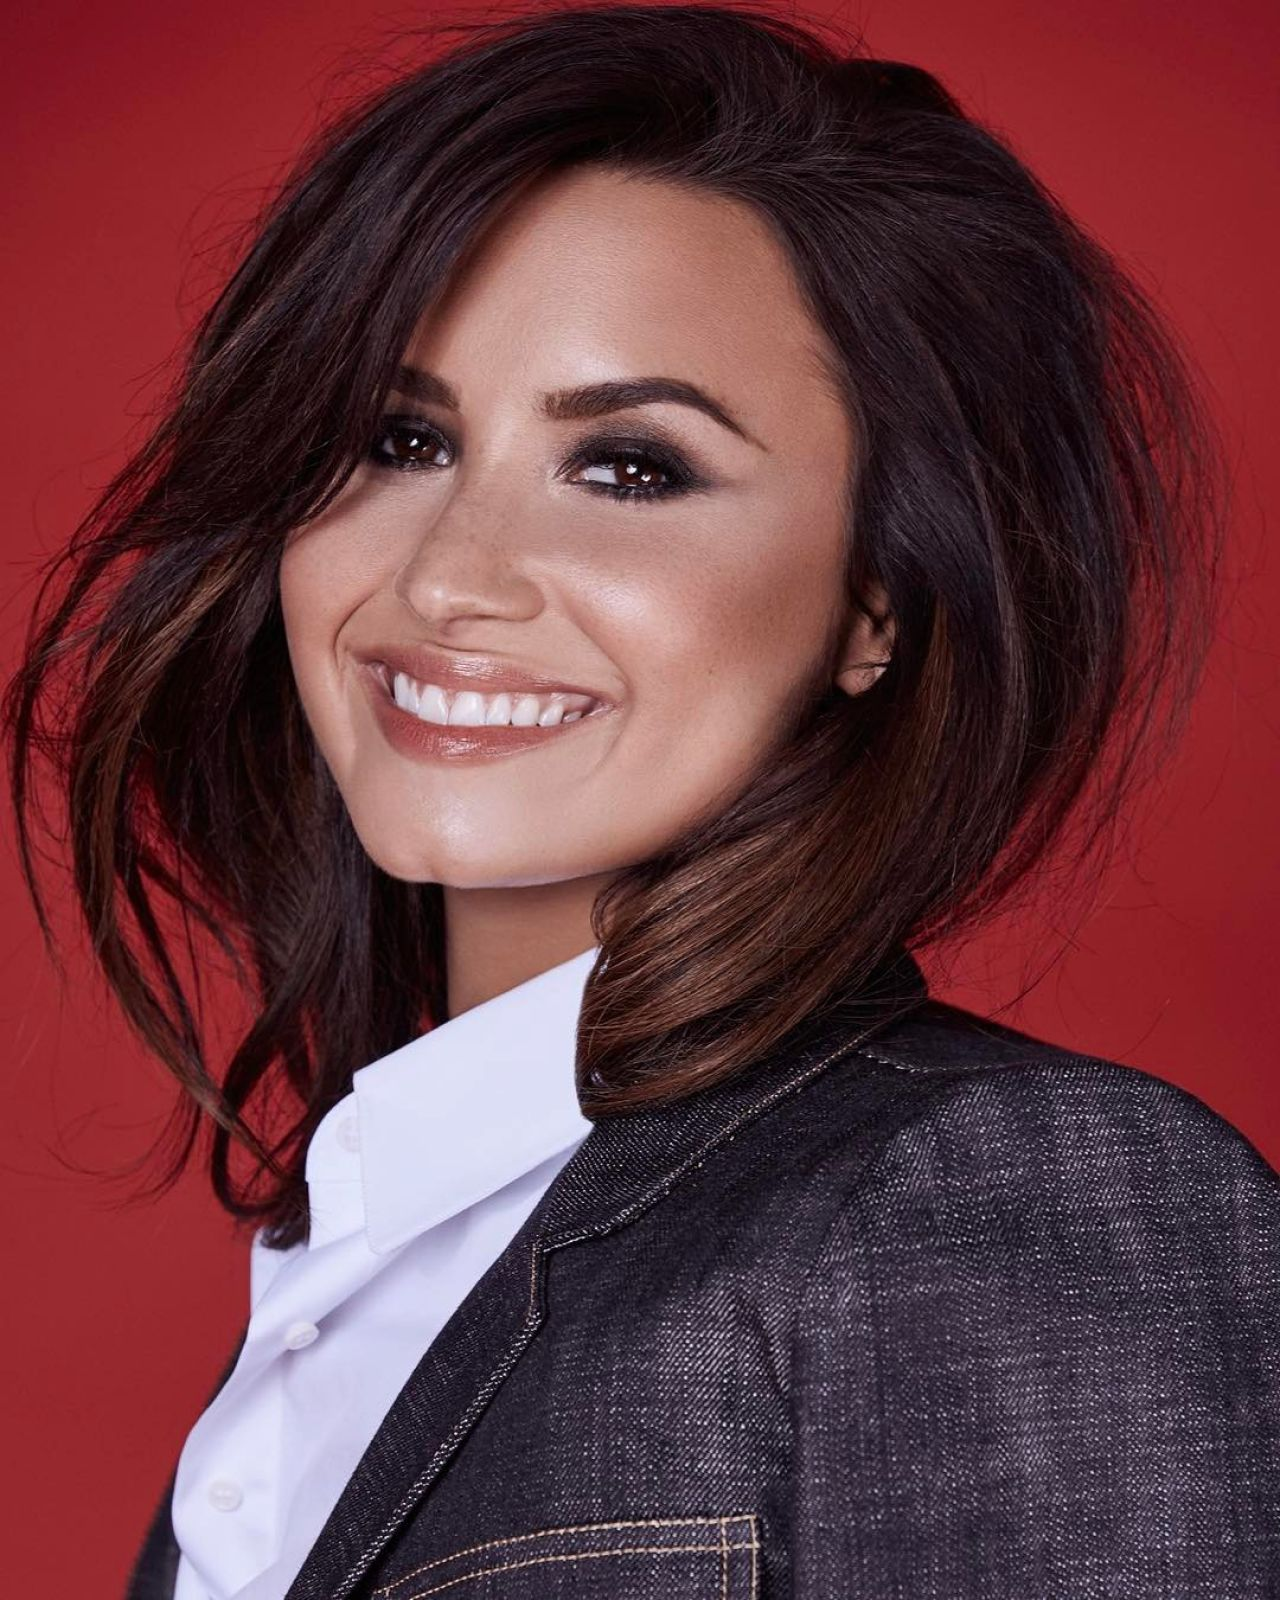 http://celebmafia.com/wp-content/uploads/2017/04/demi-lovato-photos-april-2017-4.jpg